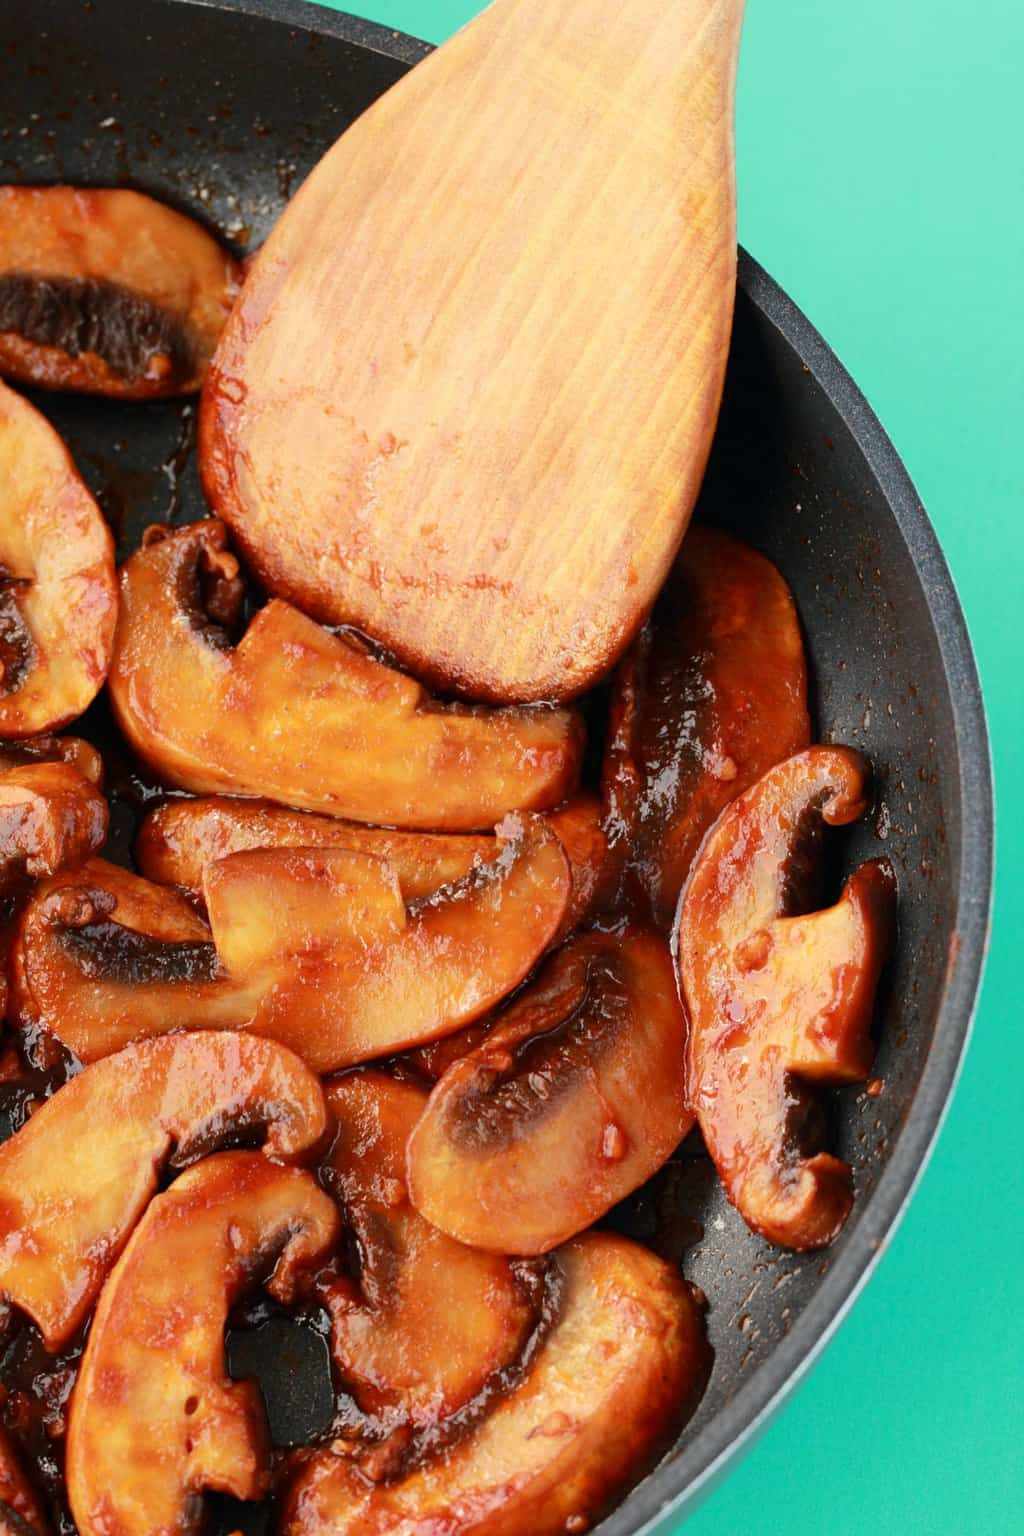 Freshly cooked mushrooms in a frying pan with a wooden spoon in the pan.